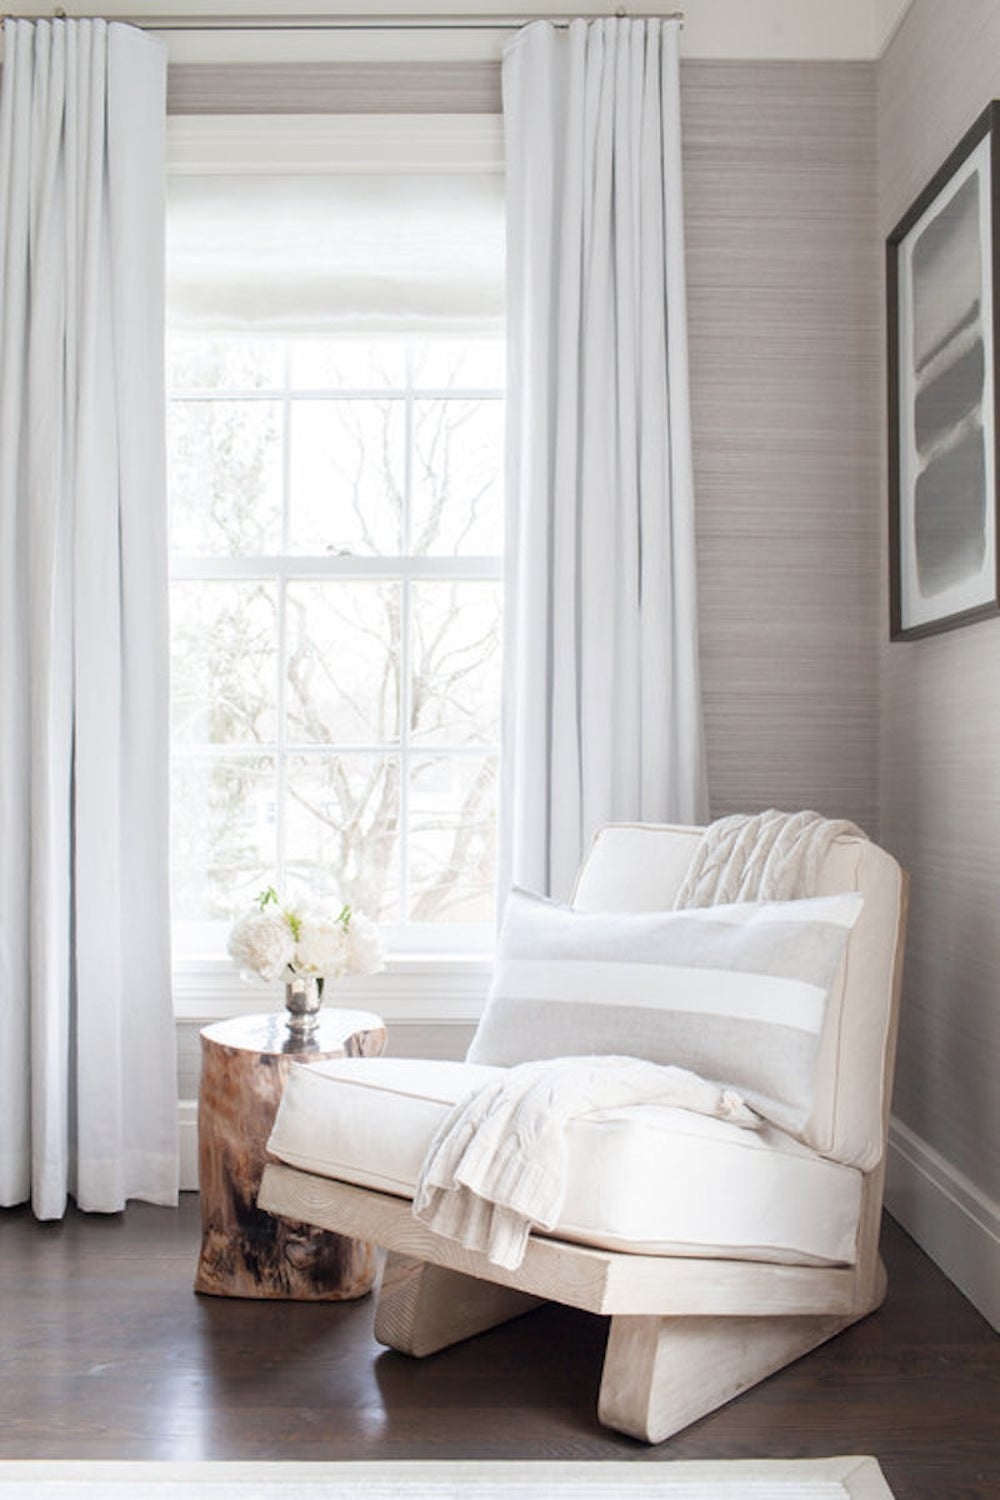 Master Bedroom Sitting Area by Chango & Co. on 1stdibs